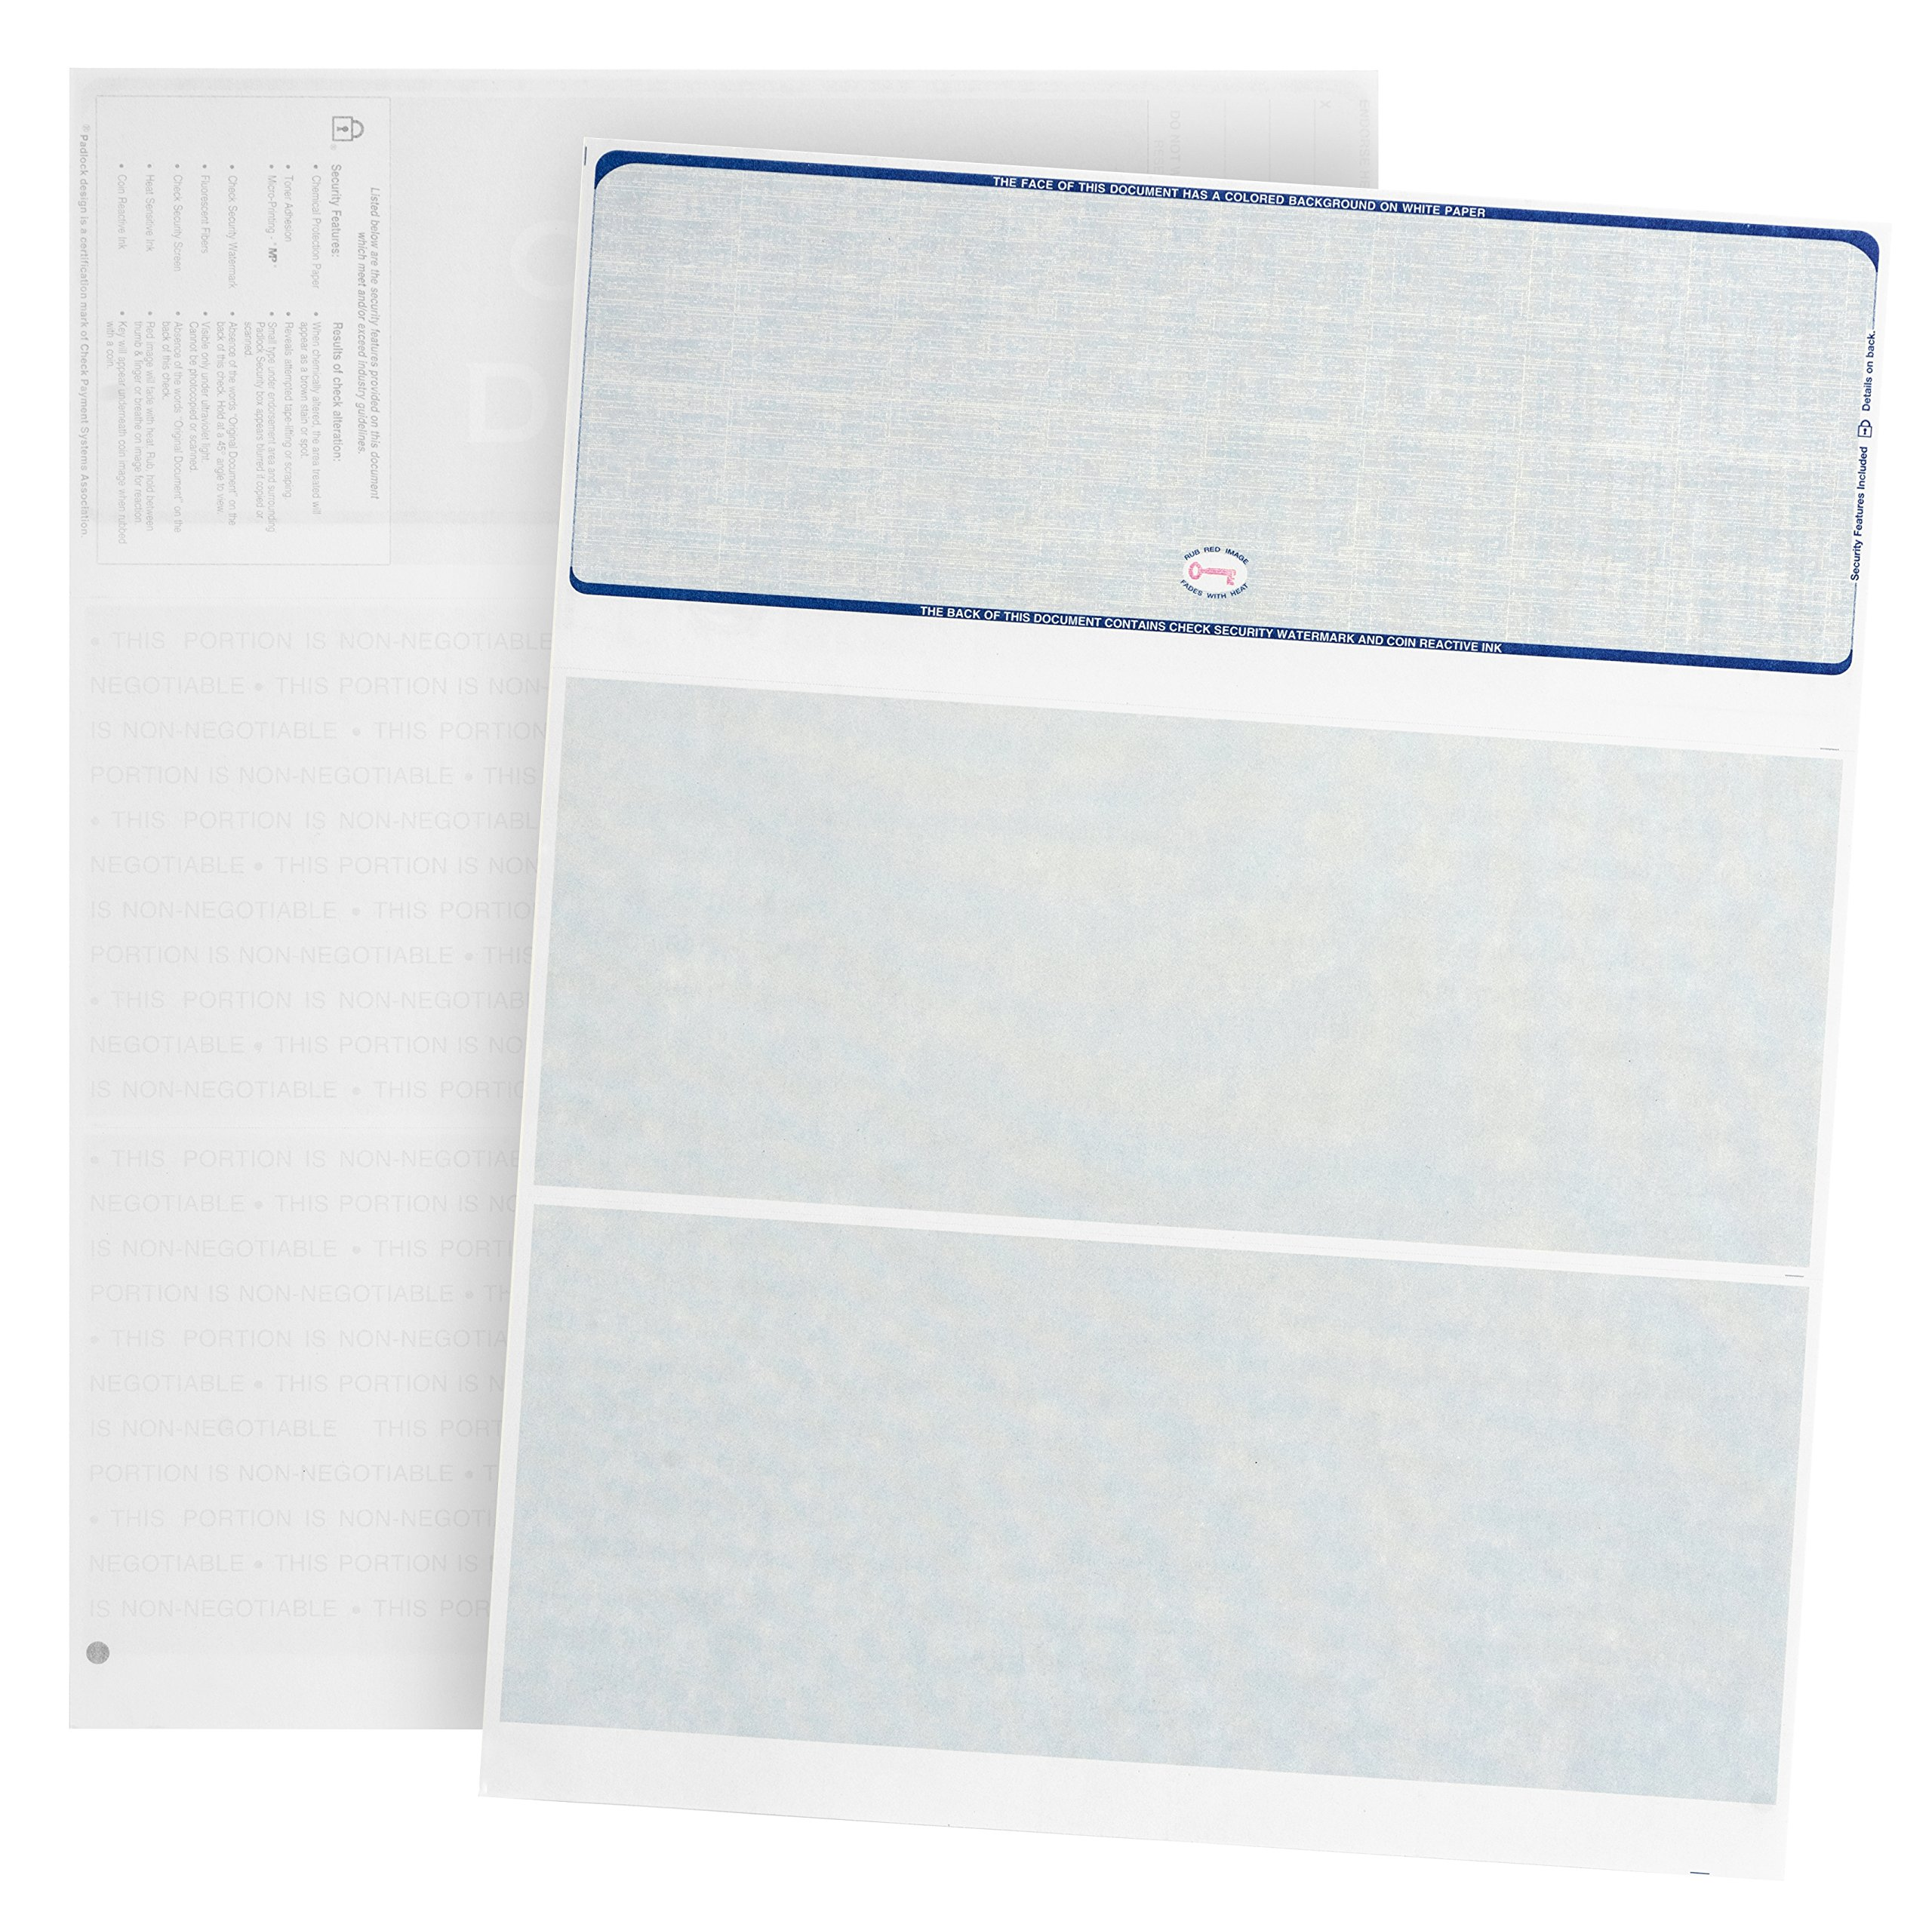 500 Blank Check Stock- Designed for Secure Computer Printed Checks with Quickbooks, Versacheck, and More - Blue Linen Pattern- 500 Sheets - 8.5'' x 11''